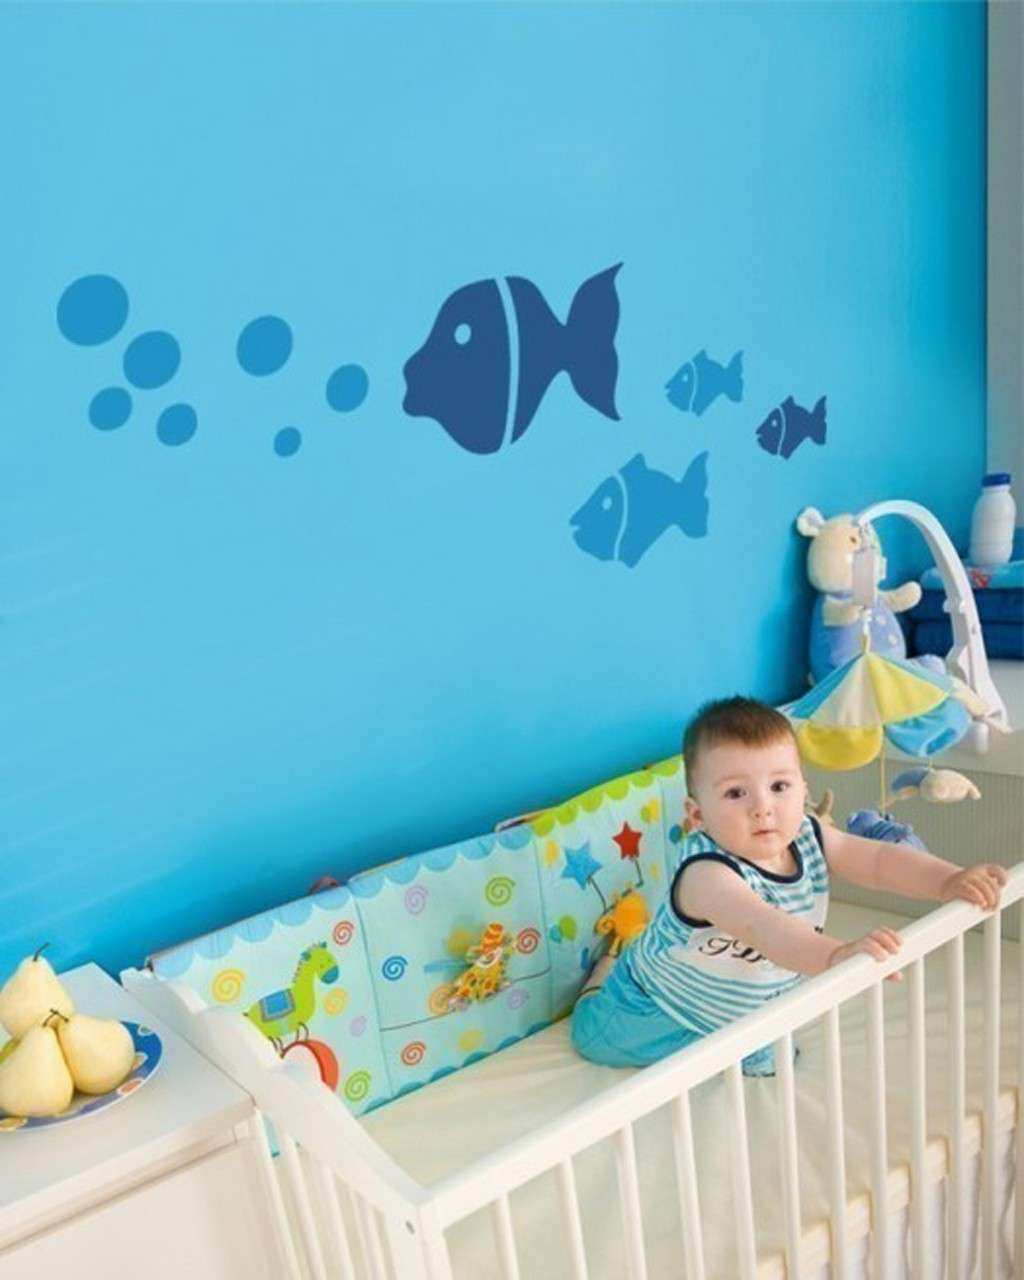 Tips on How to Décor Kids Room